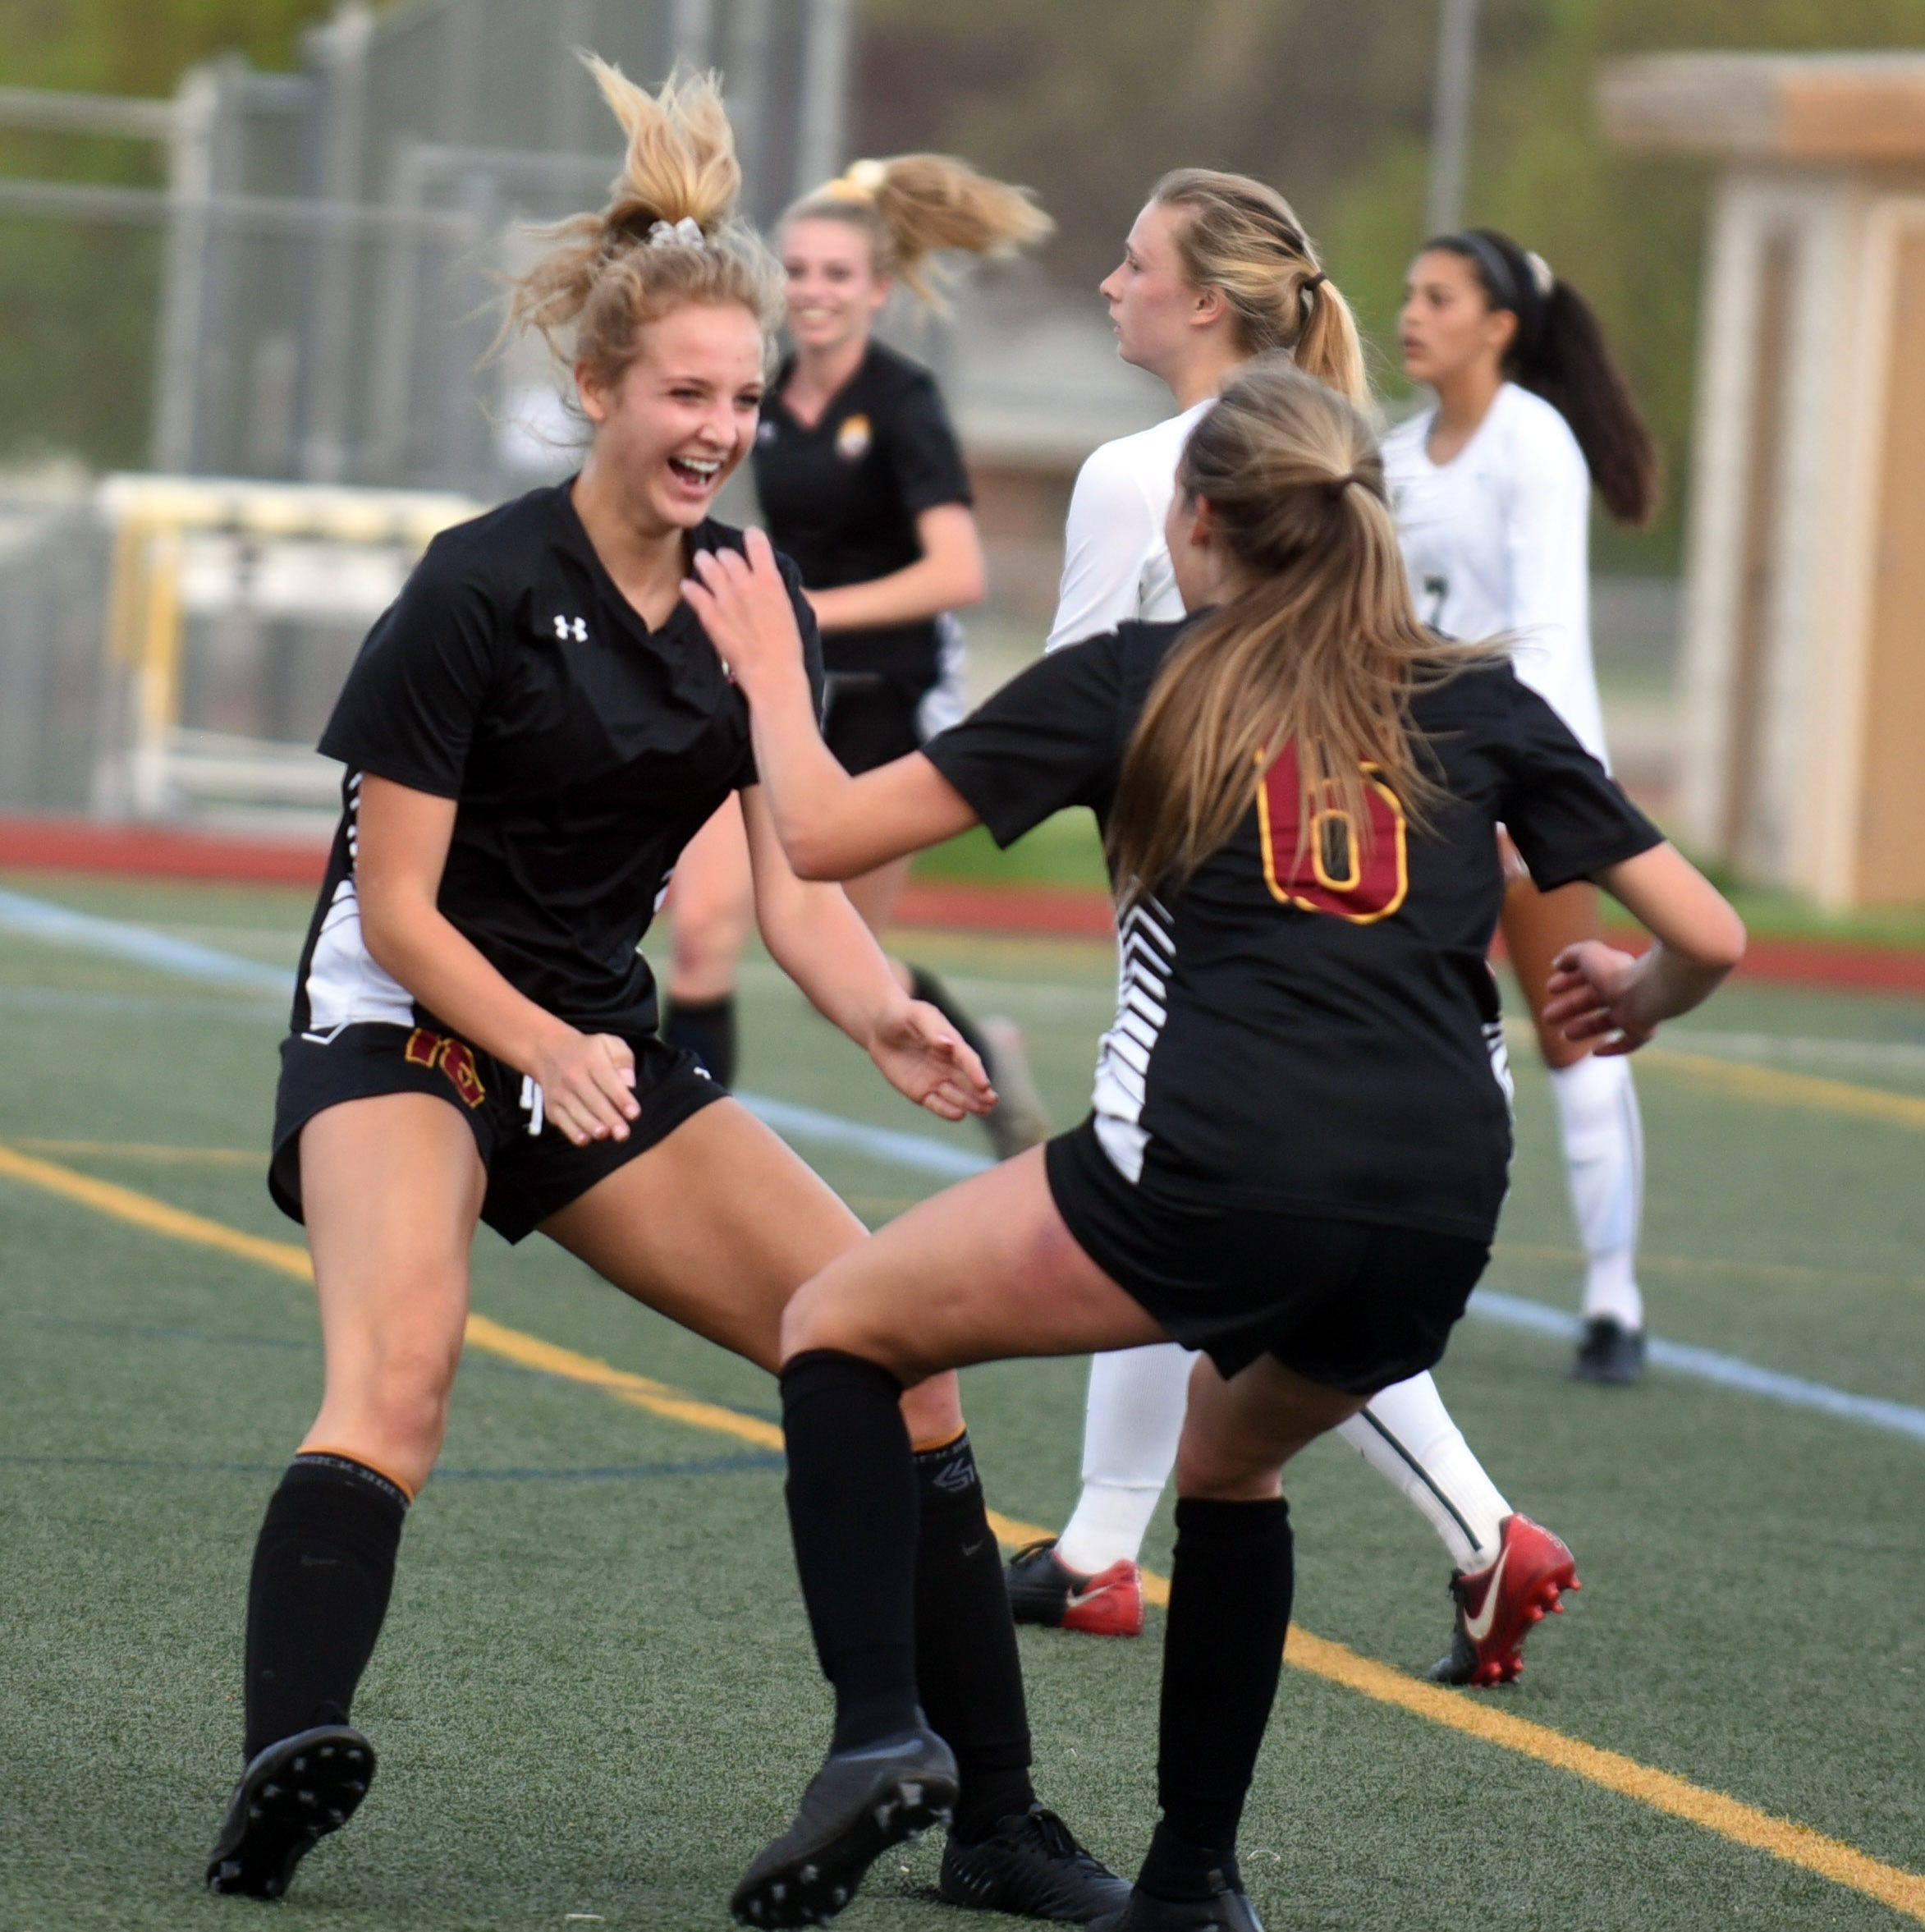 Rocky Mountain girls soccer team advances to Colorado state semifinals